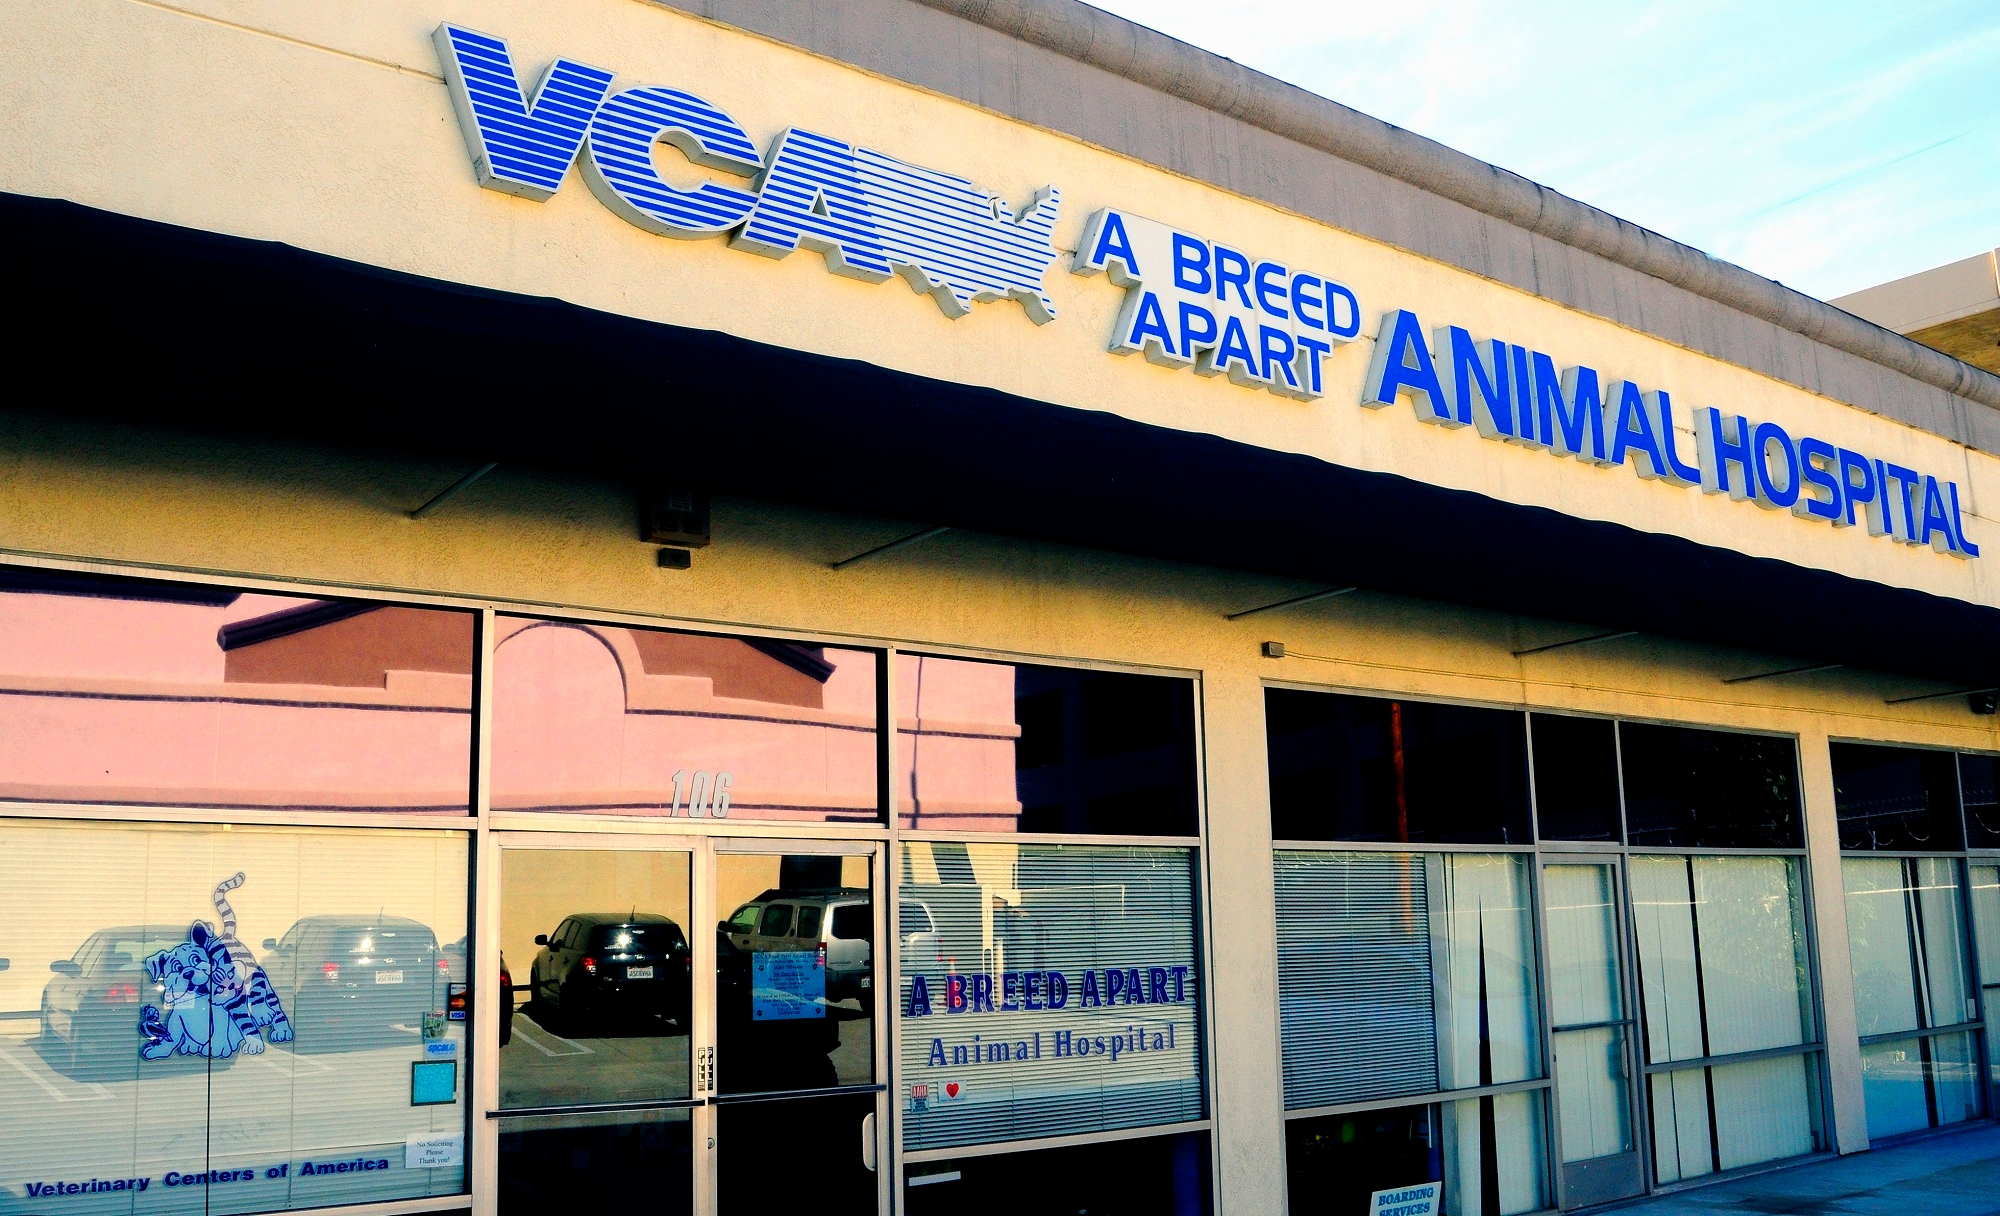 Vets in CA Pasadena 91105 VCA A Breed Apart Animal Hospital 777 S. Arroyo Pky Suite 106 (626)219-0333